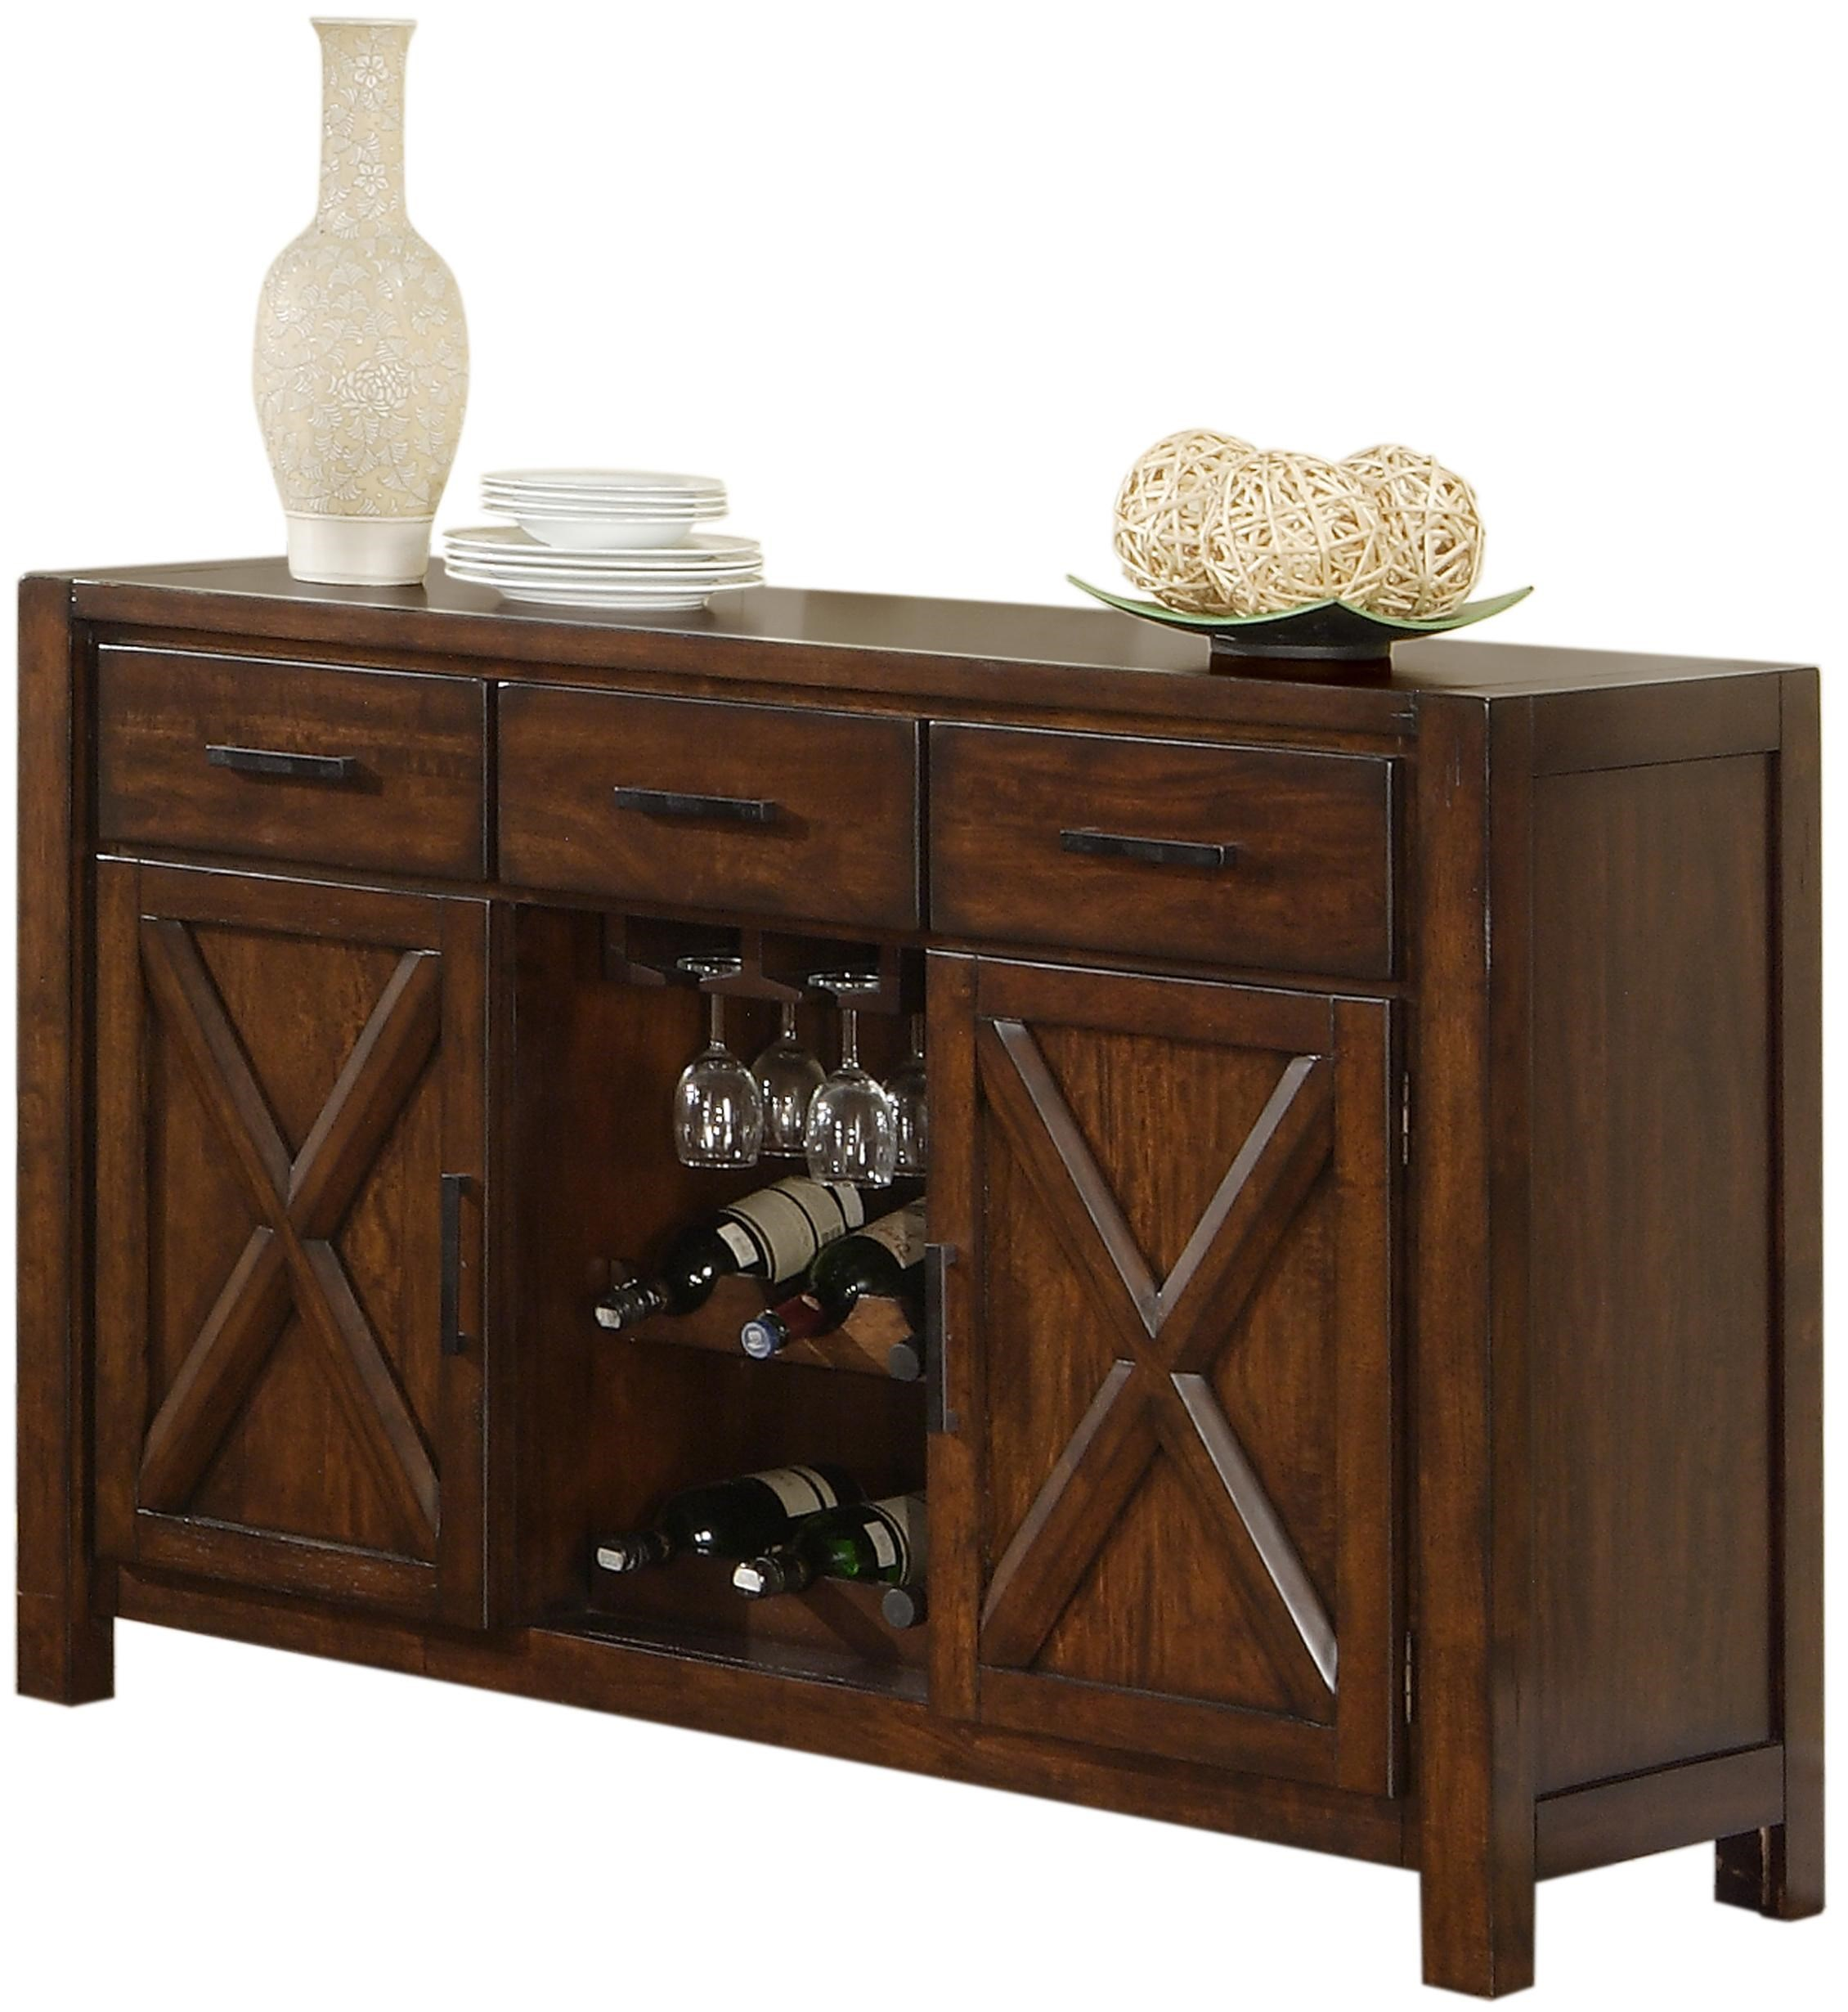 Holland House Lakeshore Dining Sideboard w Wine Rack and